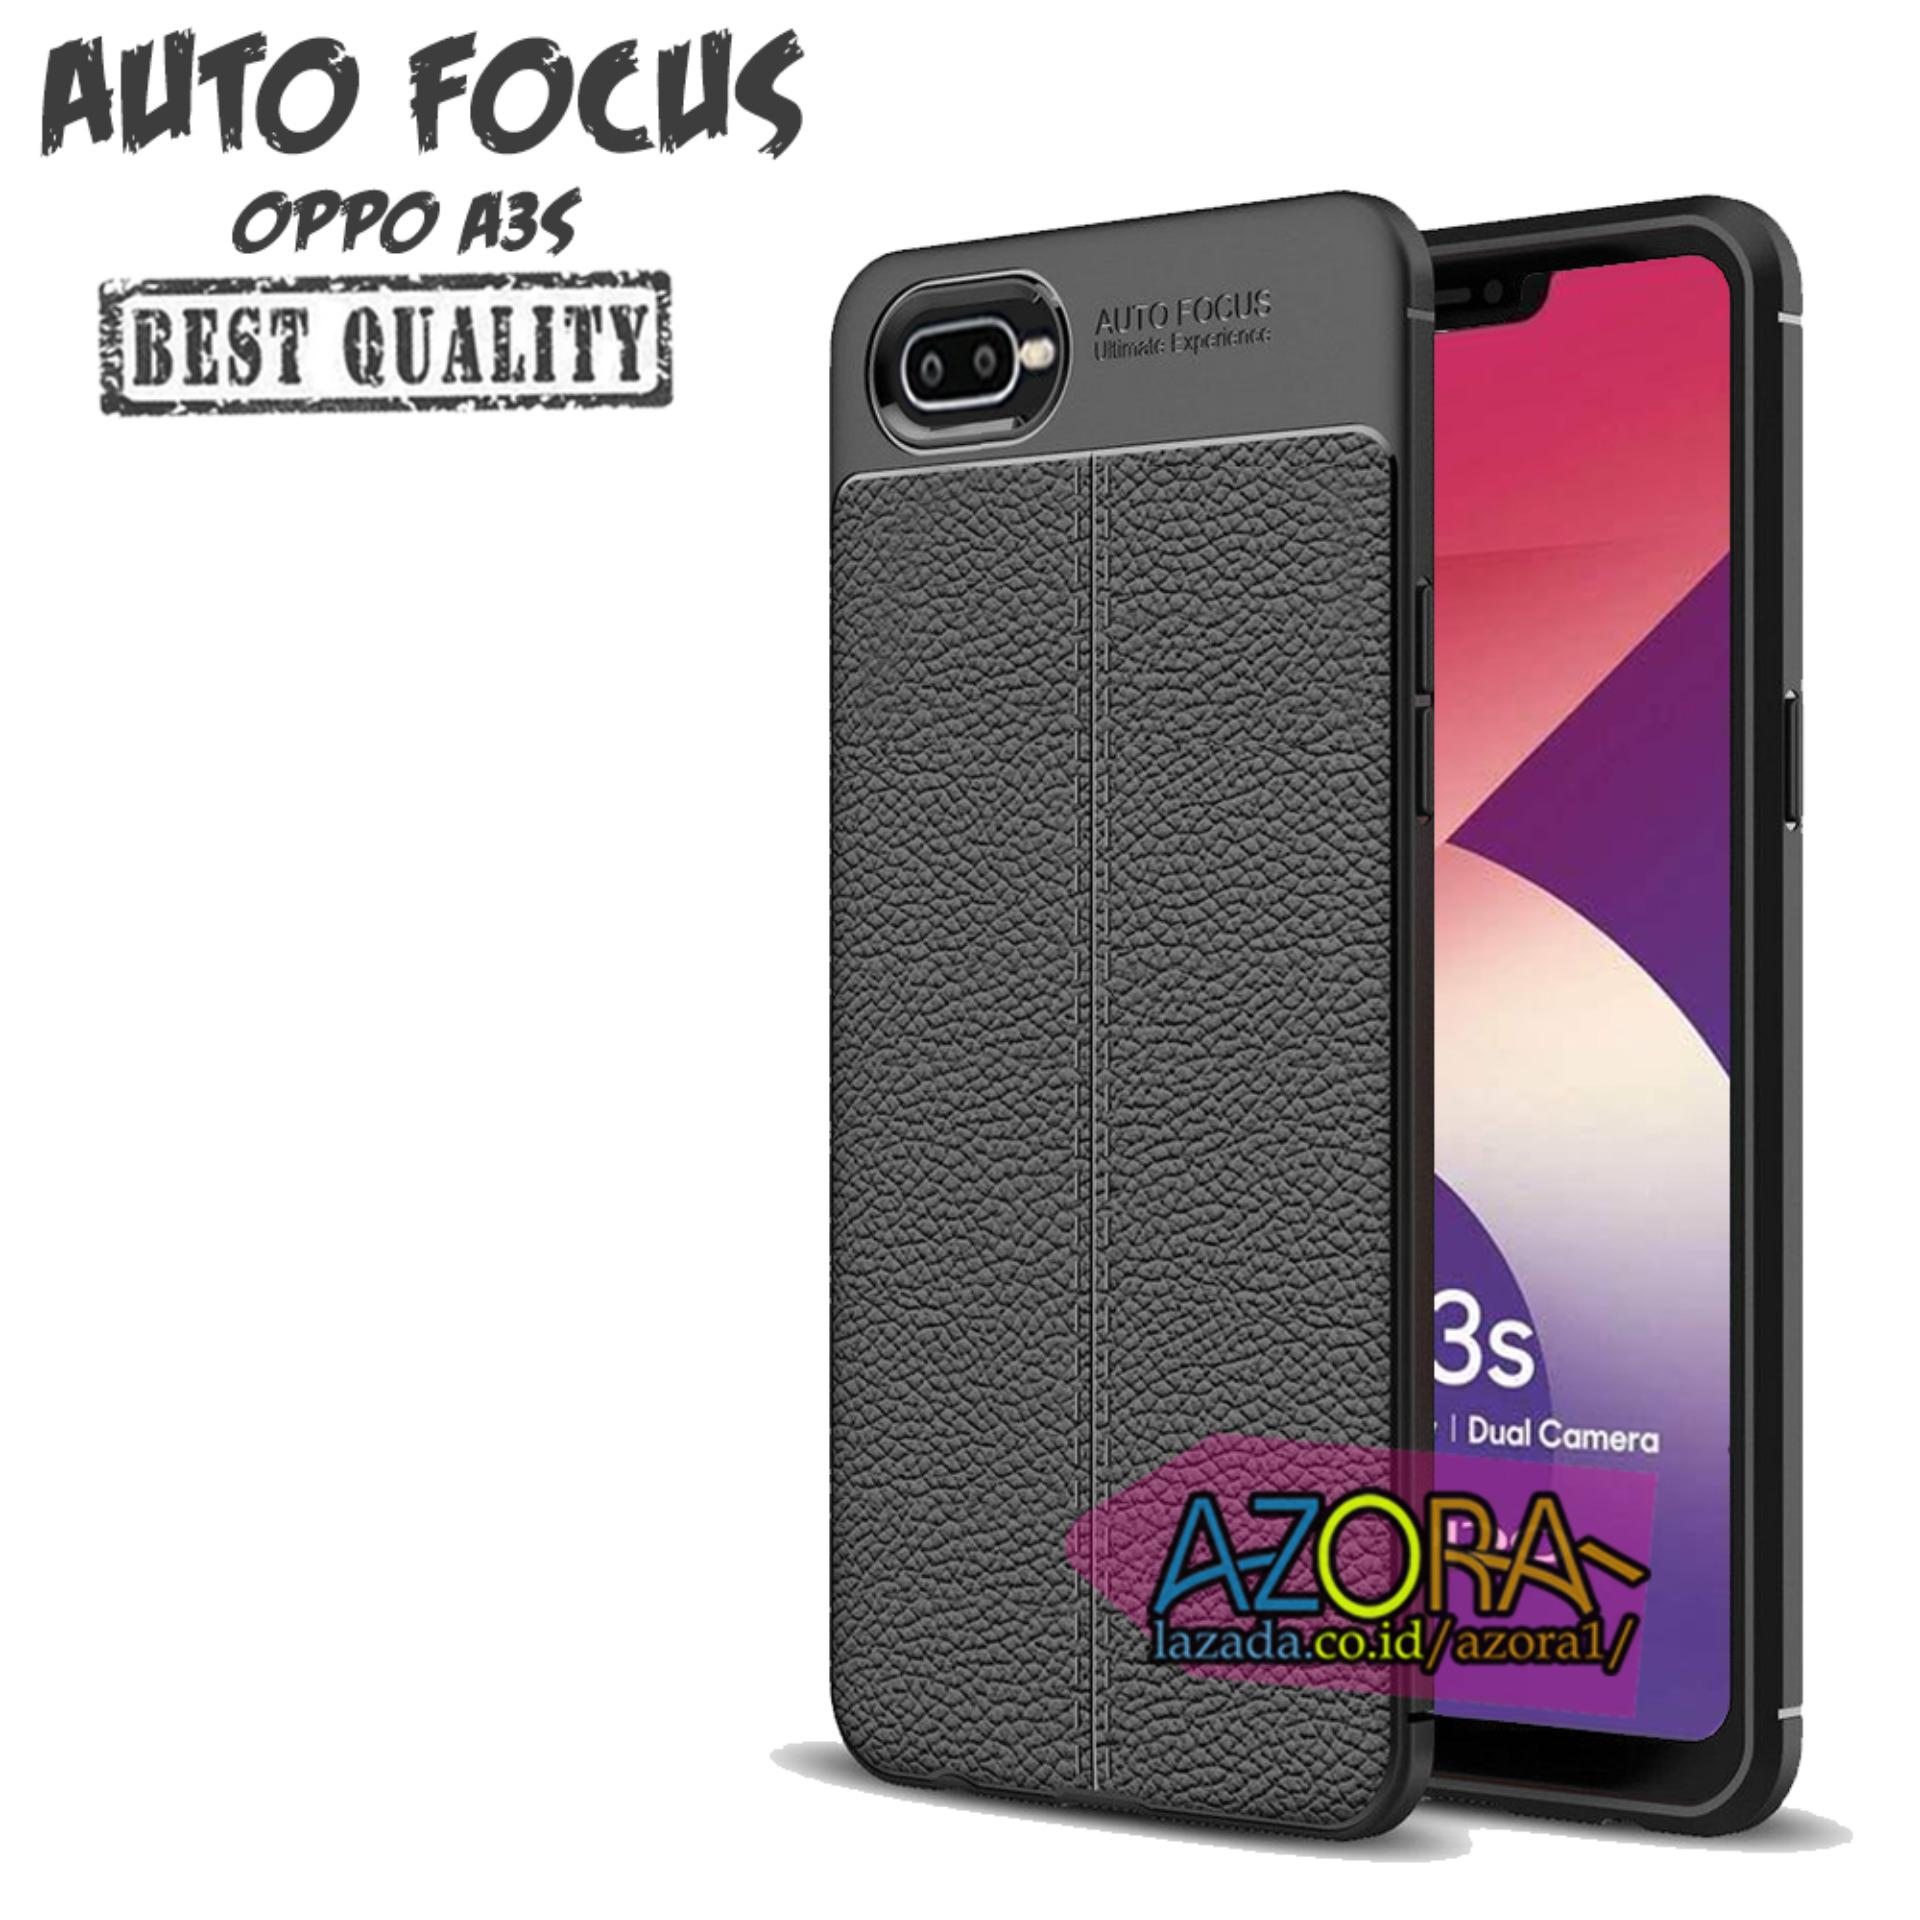 Case Auto Focus Oppo A3S 2018 Realme C1 sama ukuran Dual Camera Leather